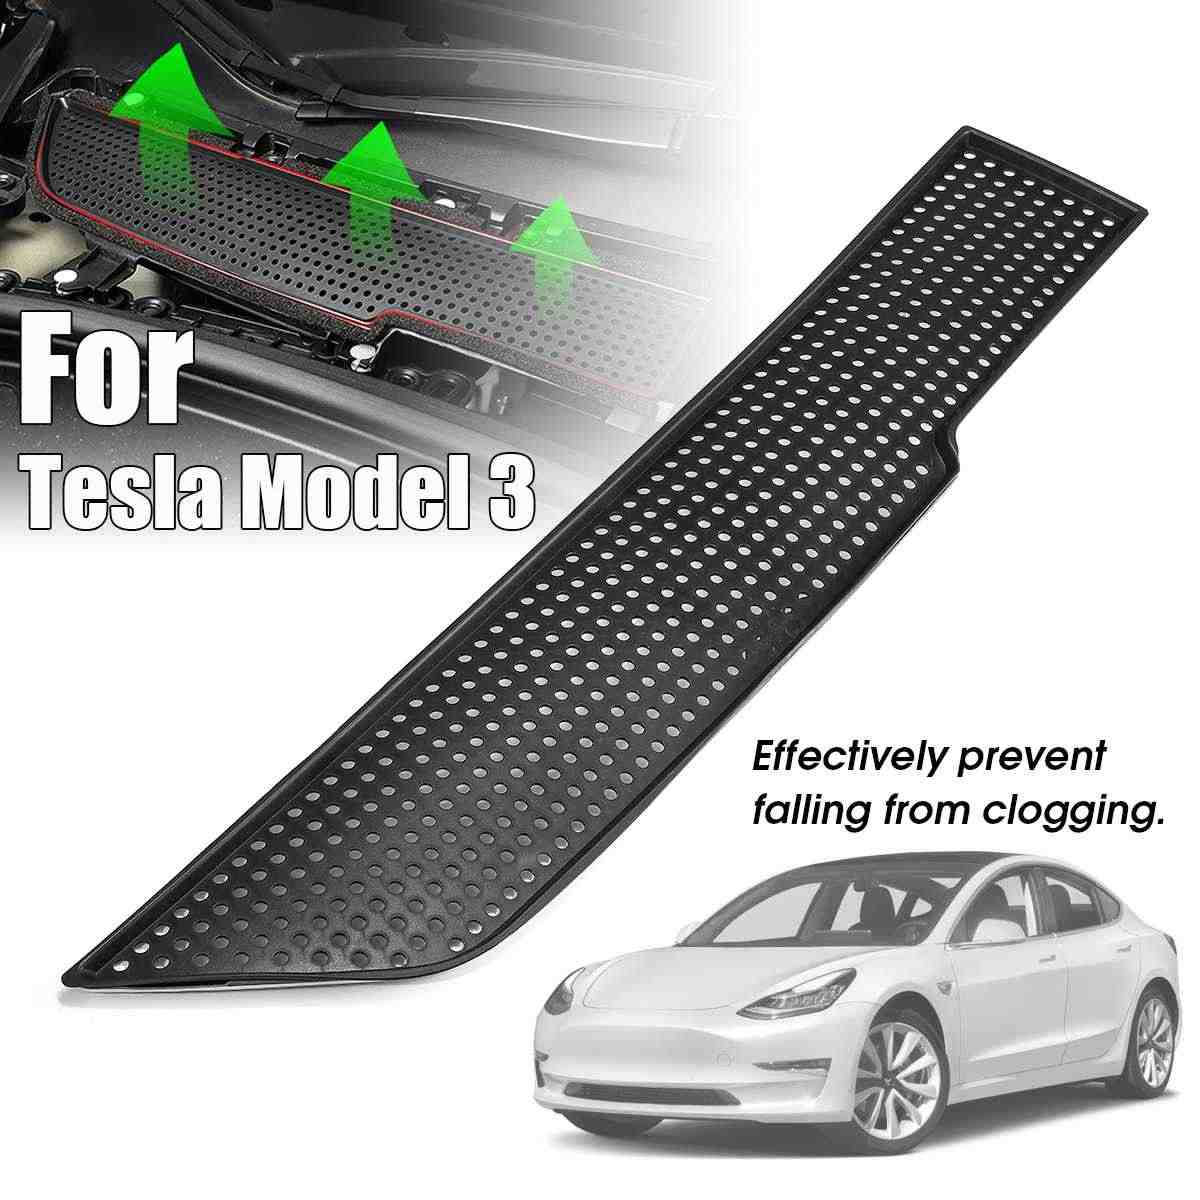 NEW Air Conditioning Air Inlet Protection Cover Dustproof Anti-dirty Purification Air Filter For Tesla Model 3 2017~2019